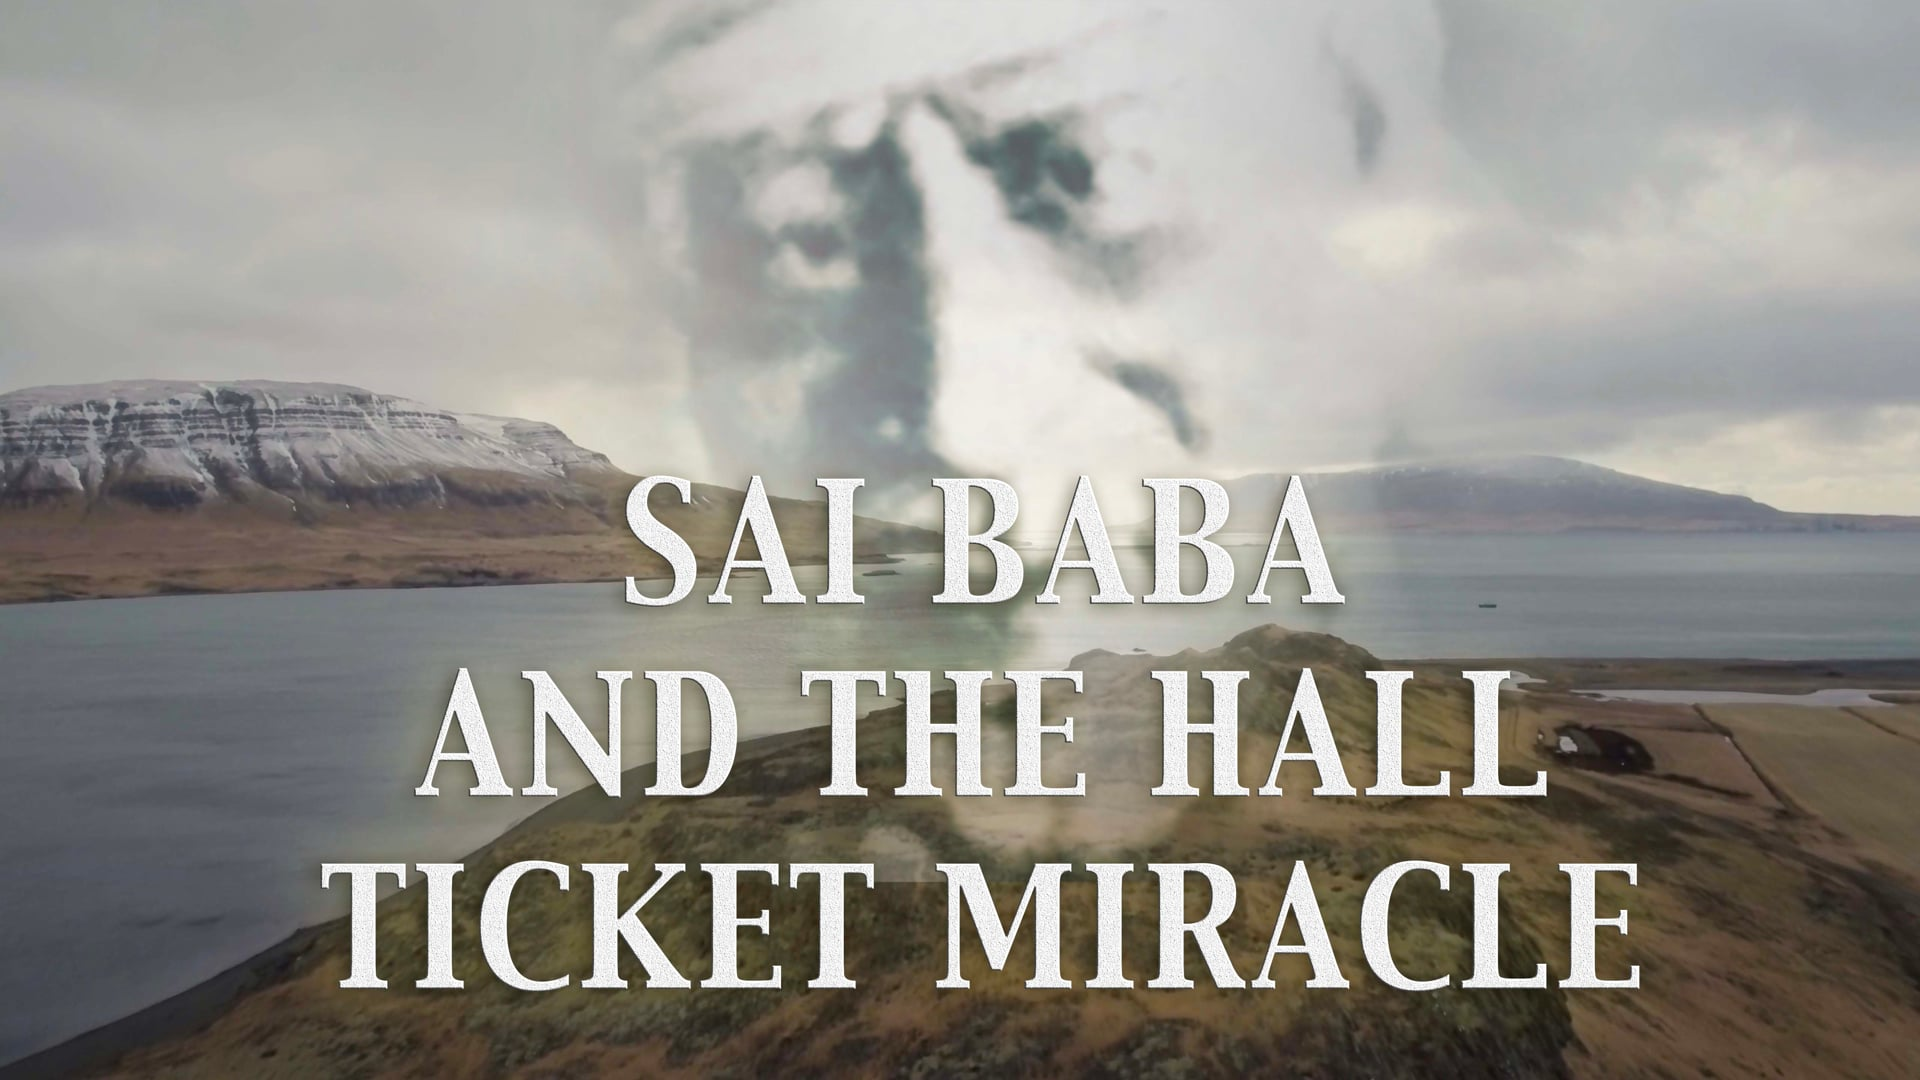 Sai Baba and the Hall Ticket Miracle